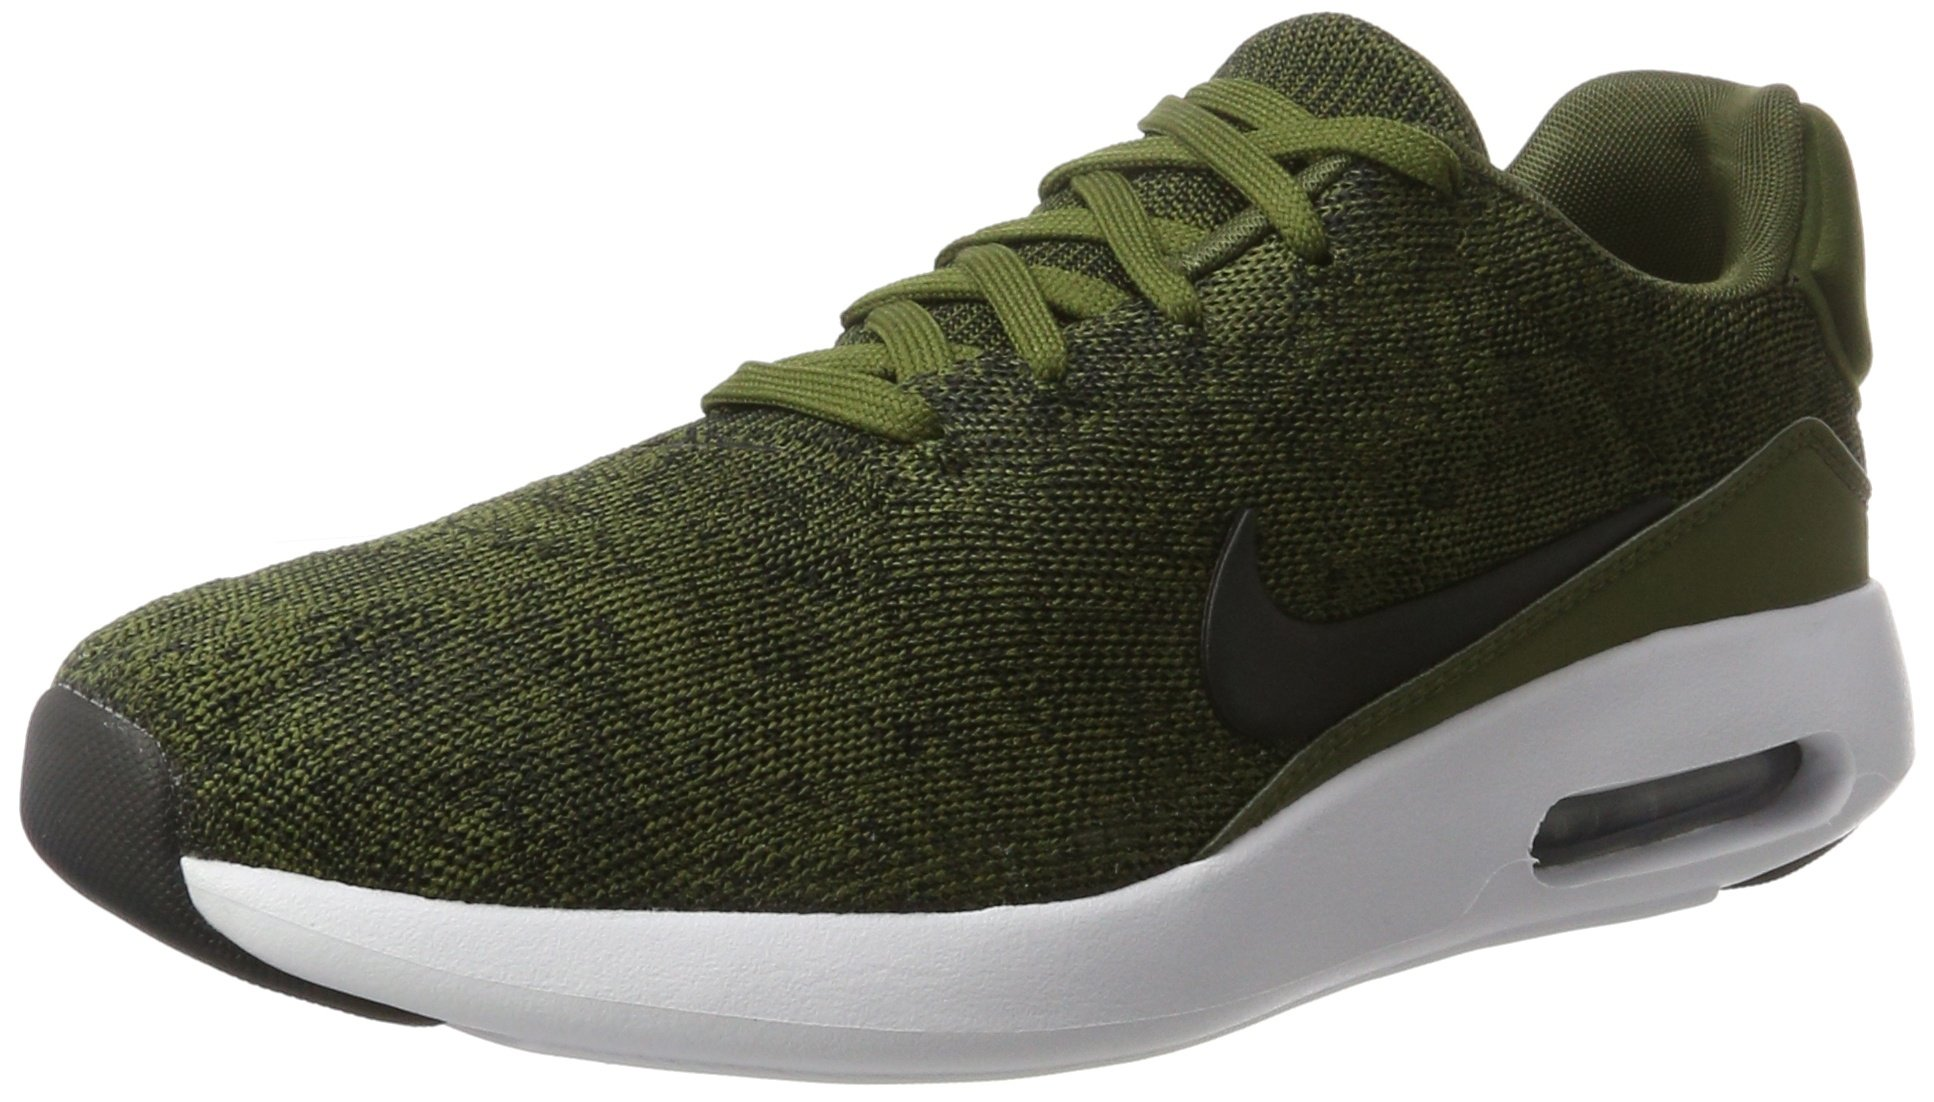 7d8a2797e517 Galleon - NIKE Air Max Modern Flyknit Mens Running Trainers 876066 Sneakers  Shoes (UK 9 US 10 EU 44